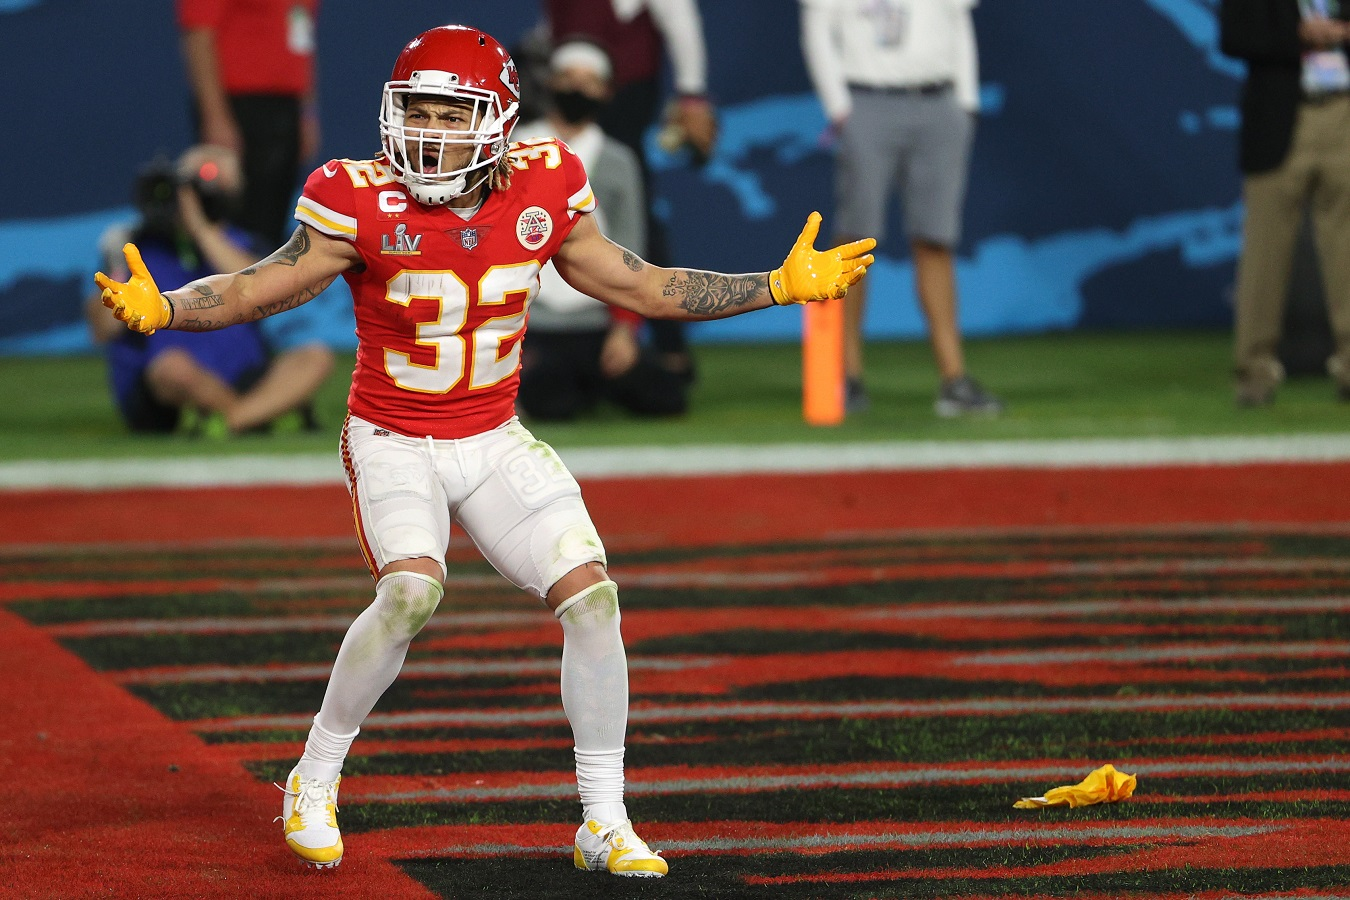 Kansas City Chiefs defensive back Tyrann Mathieu is not happy